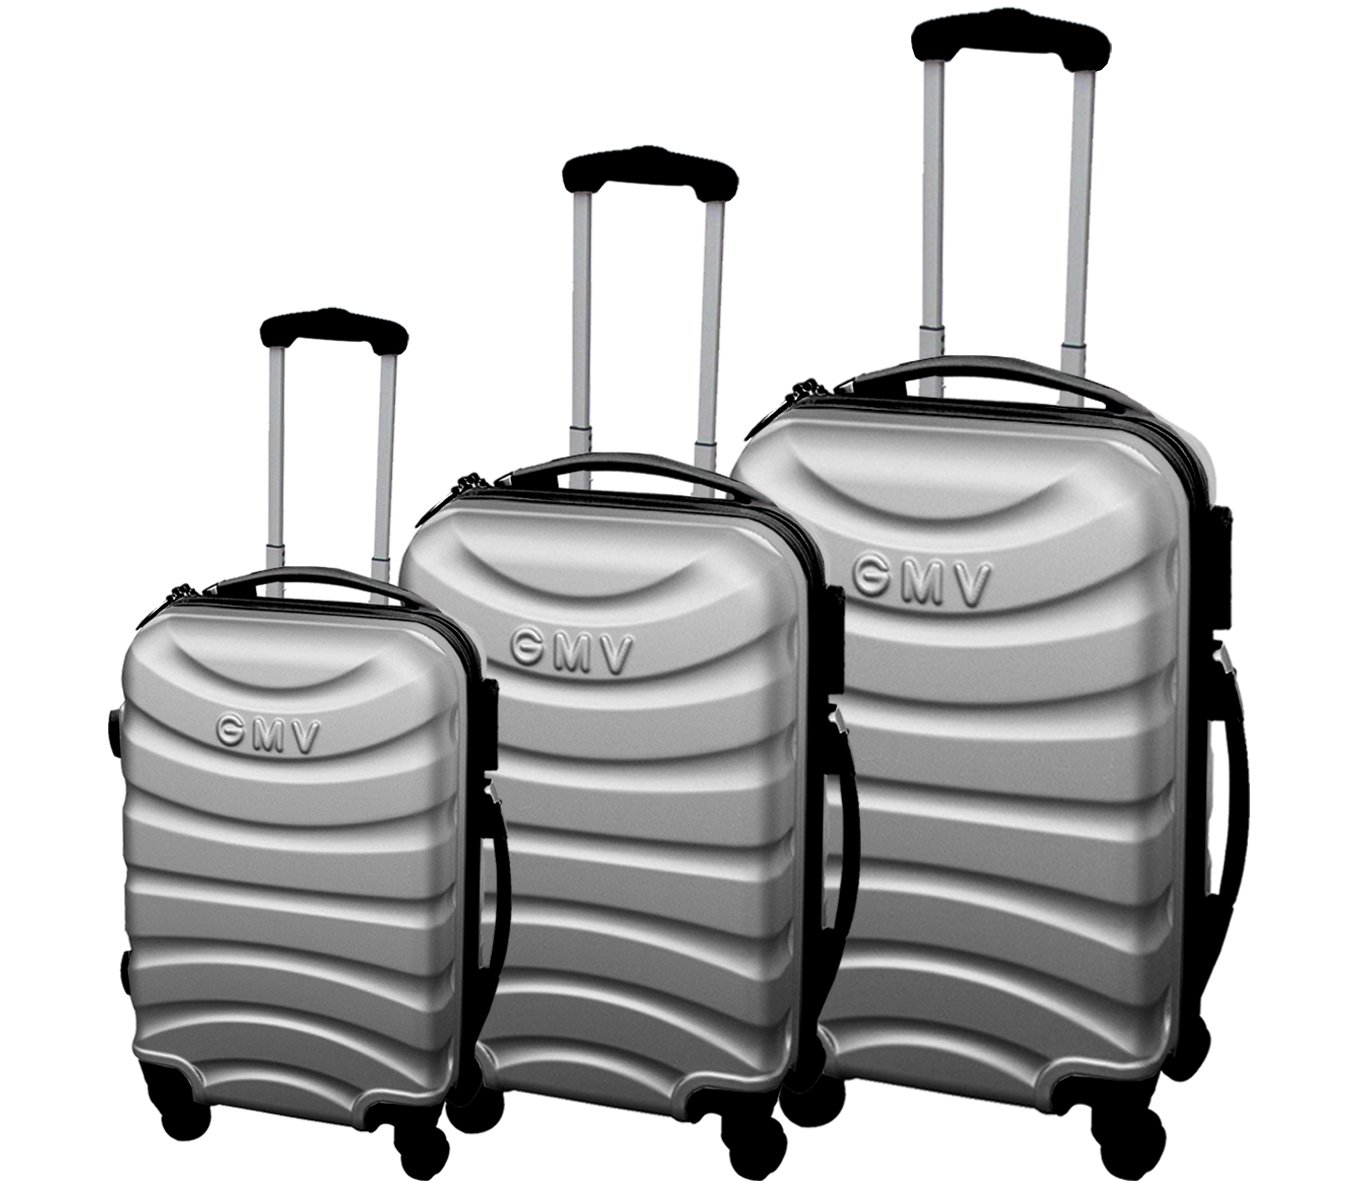 Set of suitcases Hard Shell ABS 4 wheel Spinner Lightweight Hand Luggage Cabin Travel Trolley (Silver) by Gianmarco Venturi